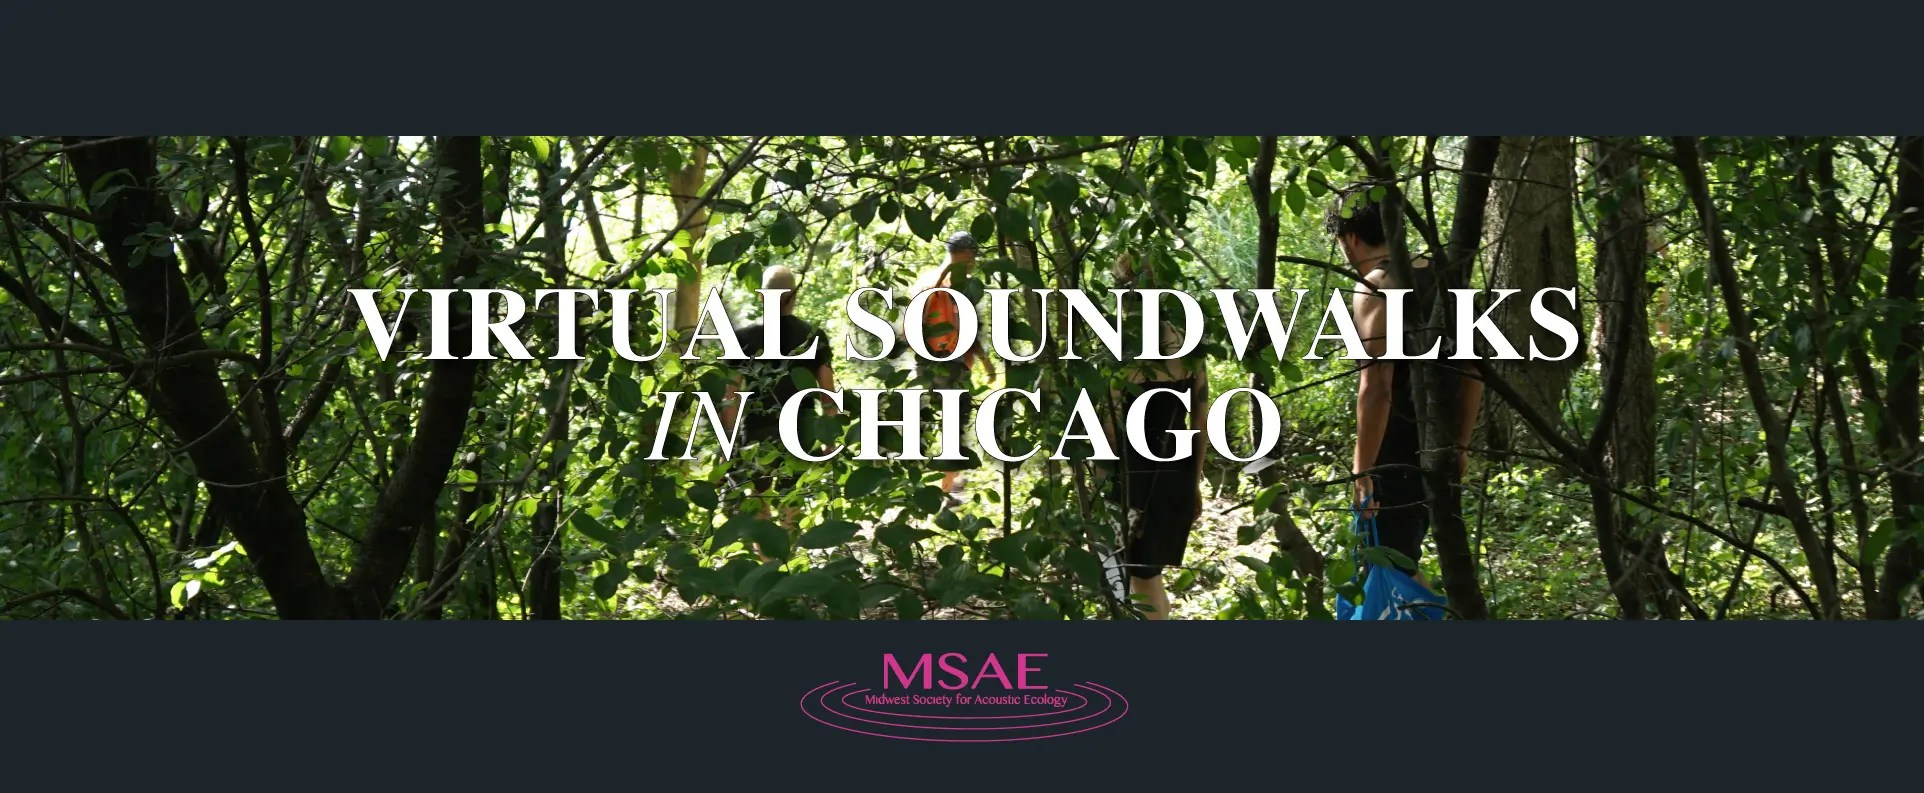 Virtual Soundwalks In Chicago Parks